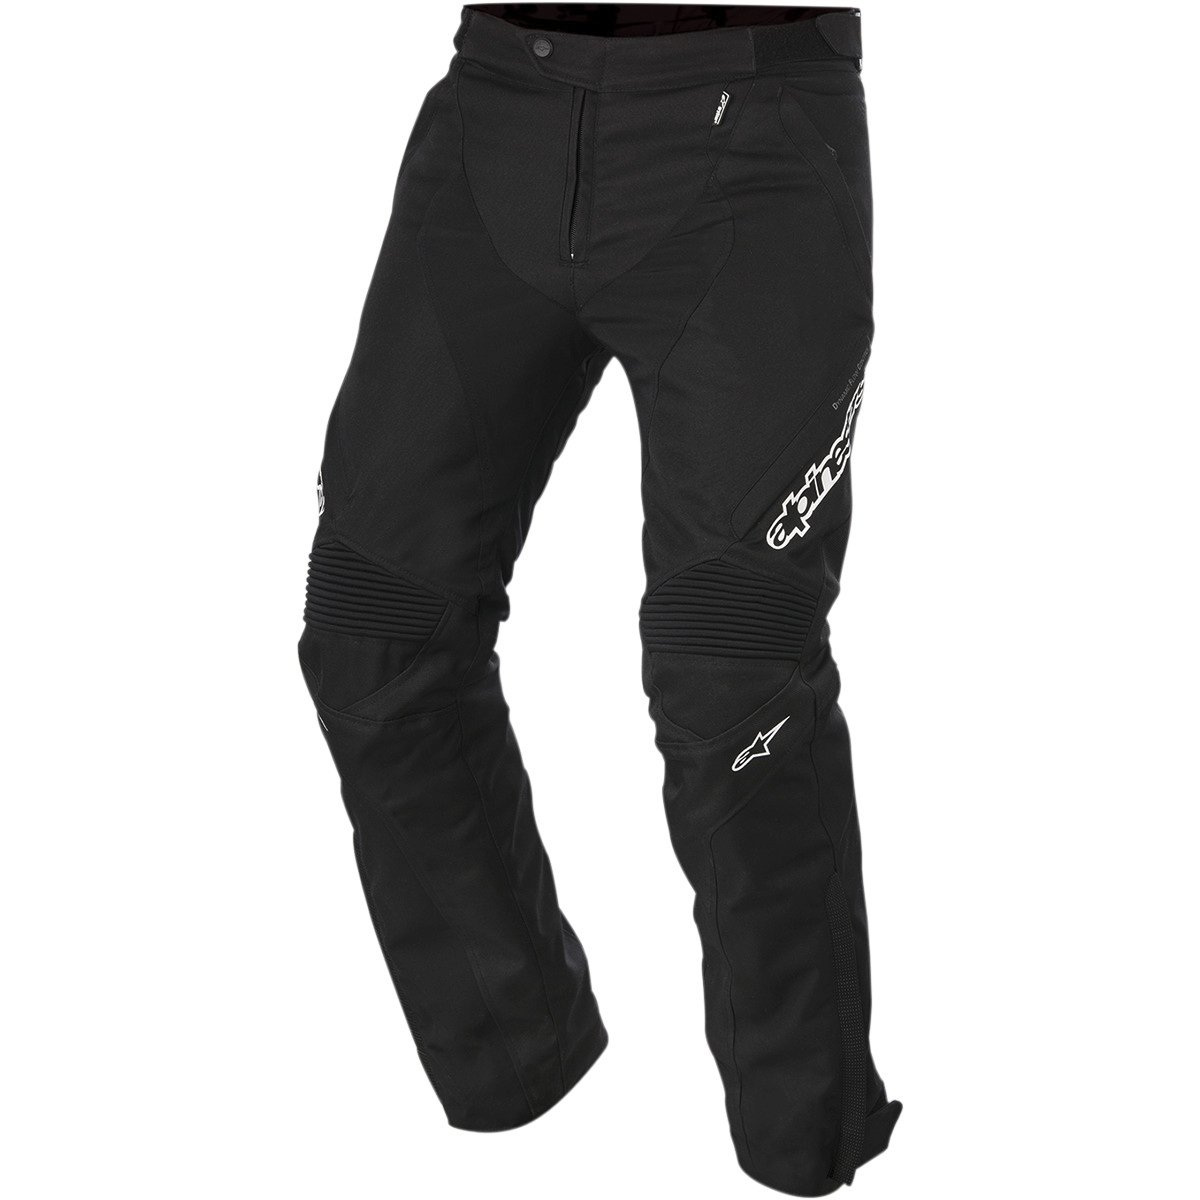 Alpinestars Raider Drystar Men's Sports Bike Motorcycle Pants - Black / X-Large